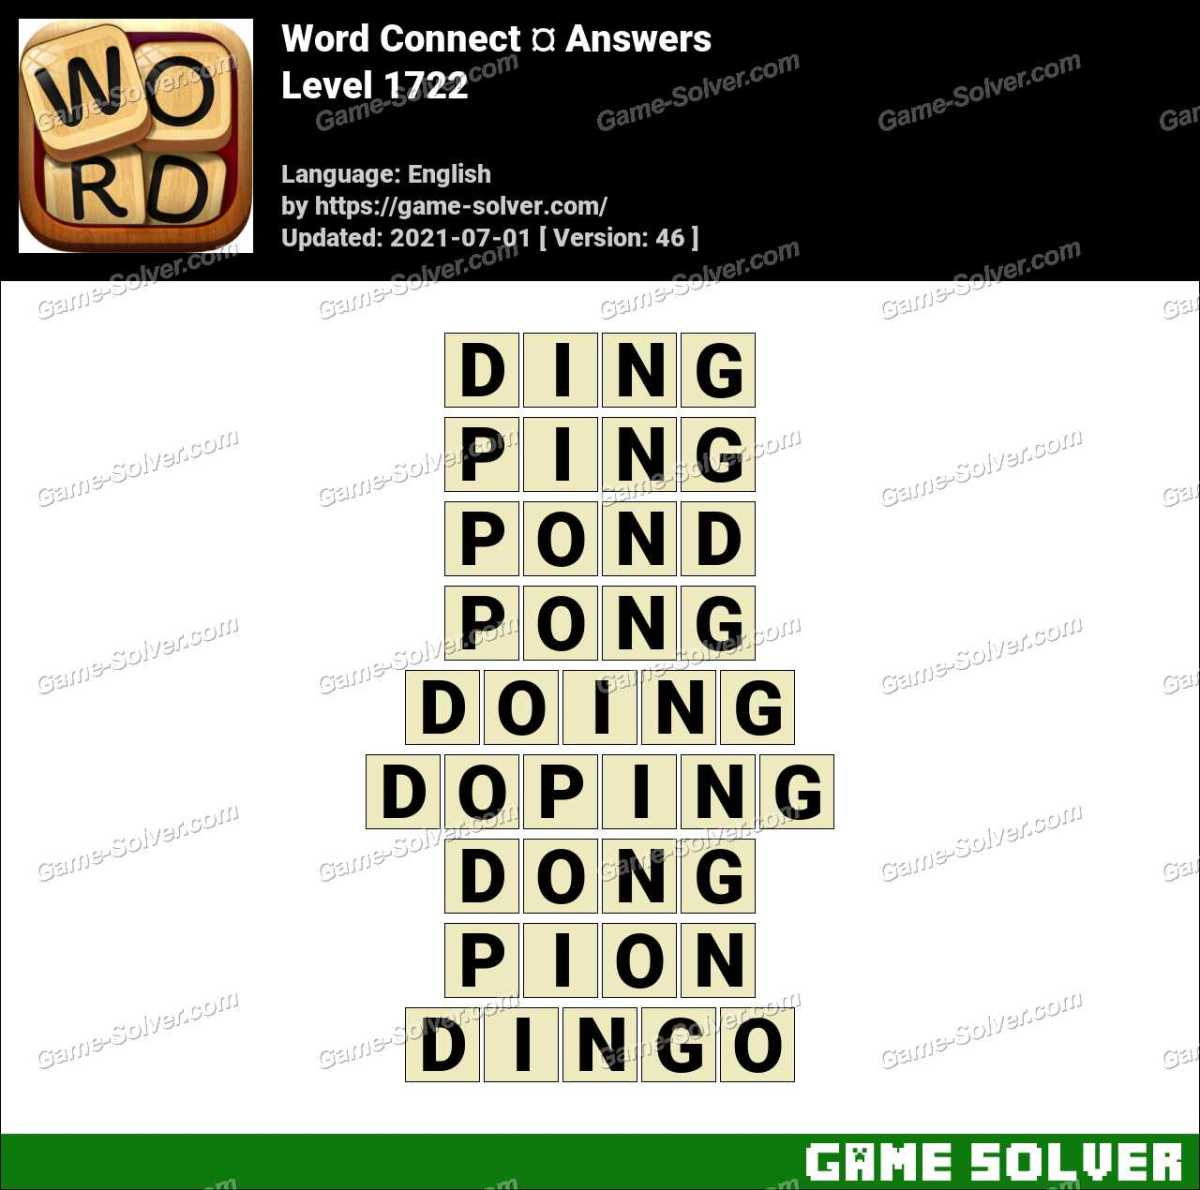 Word Connect Level 1722 Answers